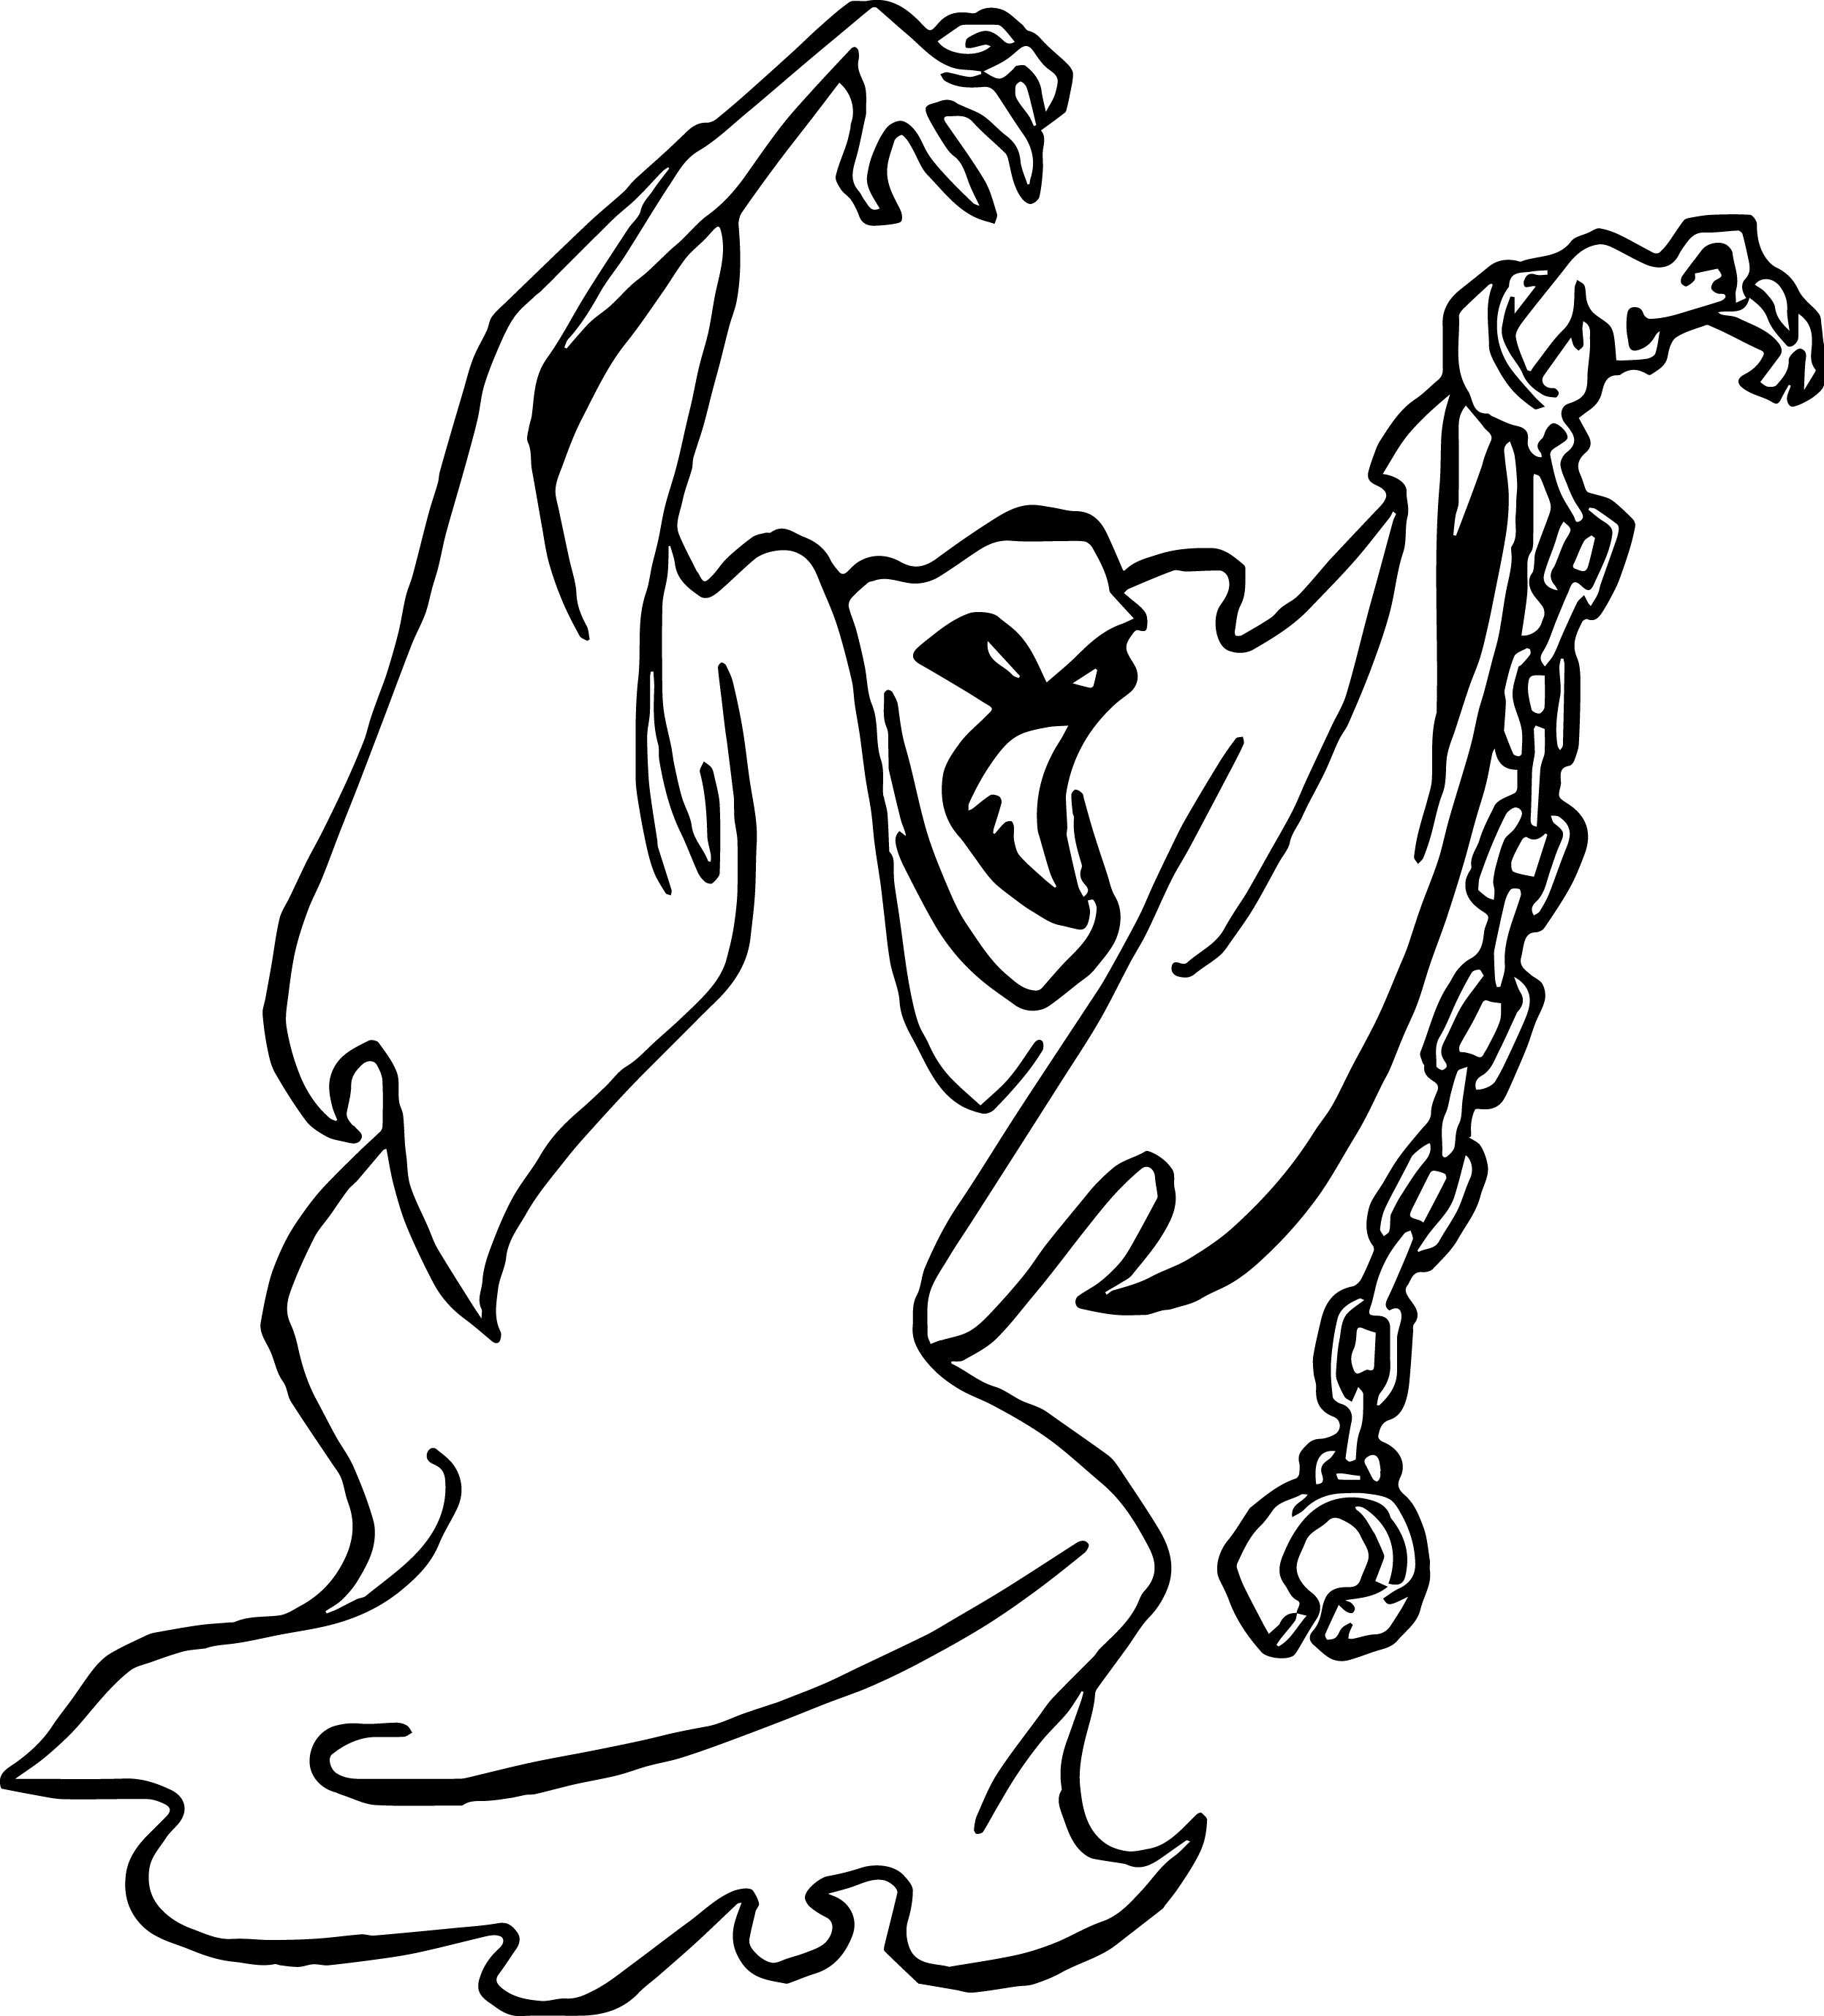 Ghost Scooby Doo Coloring Page Wecoloringpage